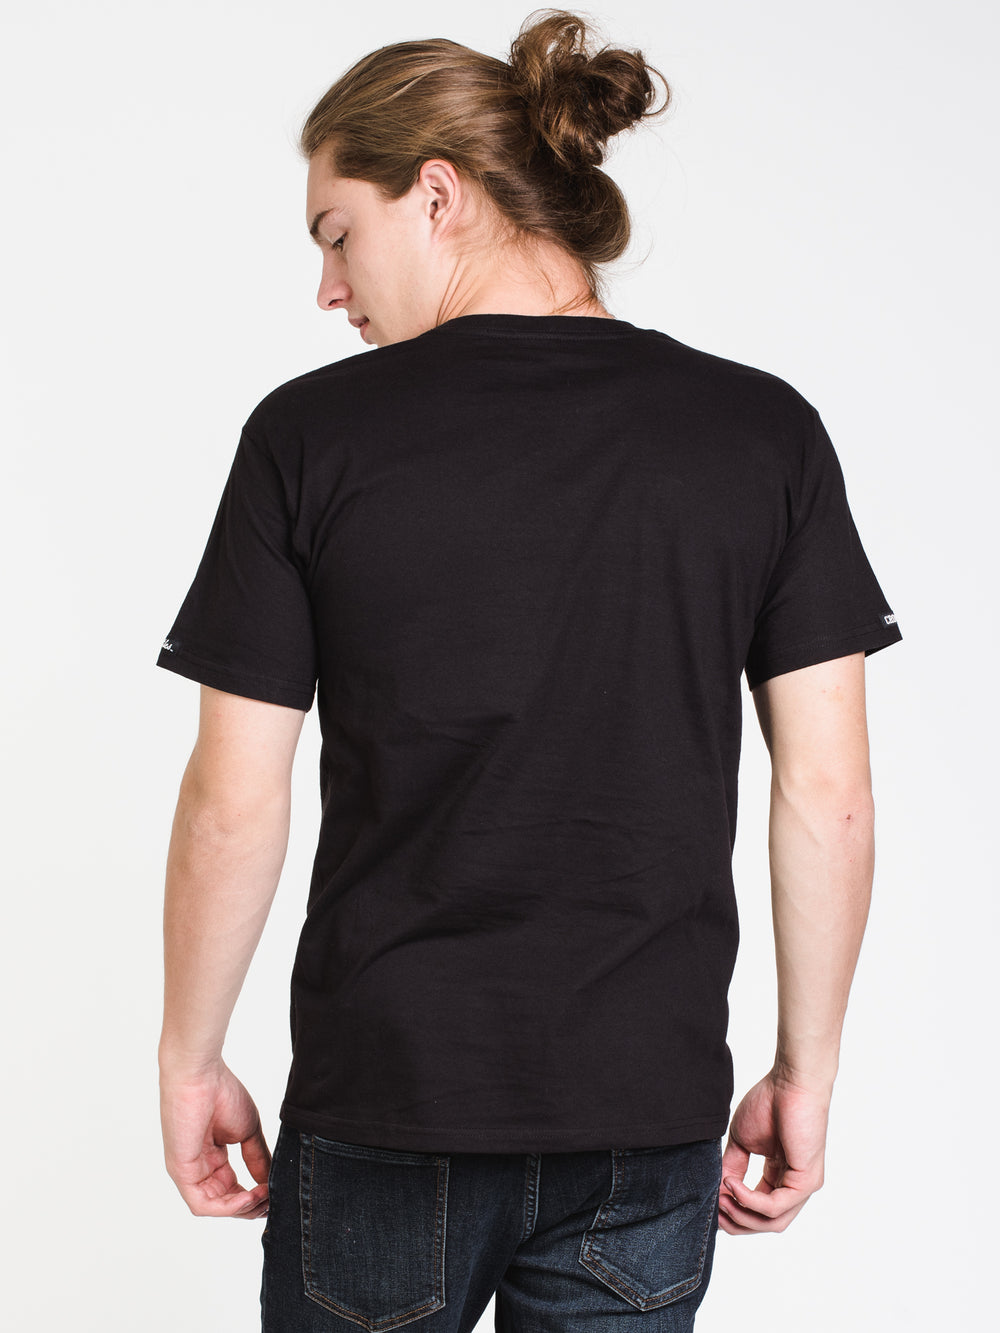 MENS REVOLT BANDUSA SHORT SLEEVE T-SHIRT - BLACK